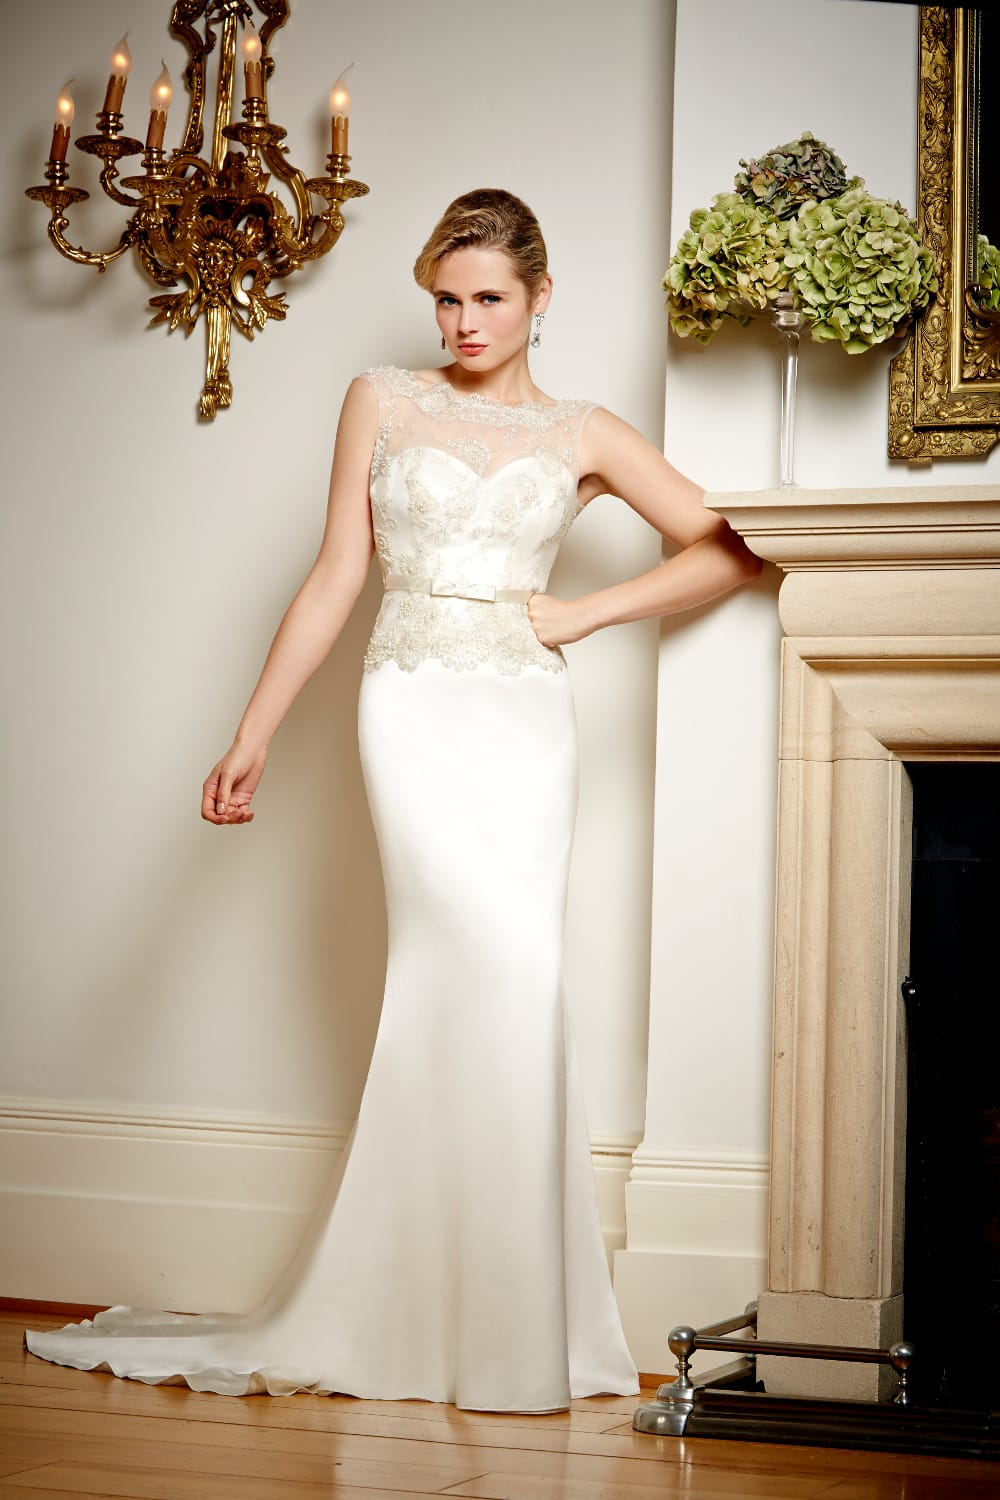 Margaret moreland corina sell my wedding dress online for Buy designer wedding dresses online